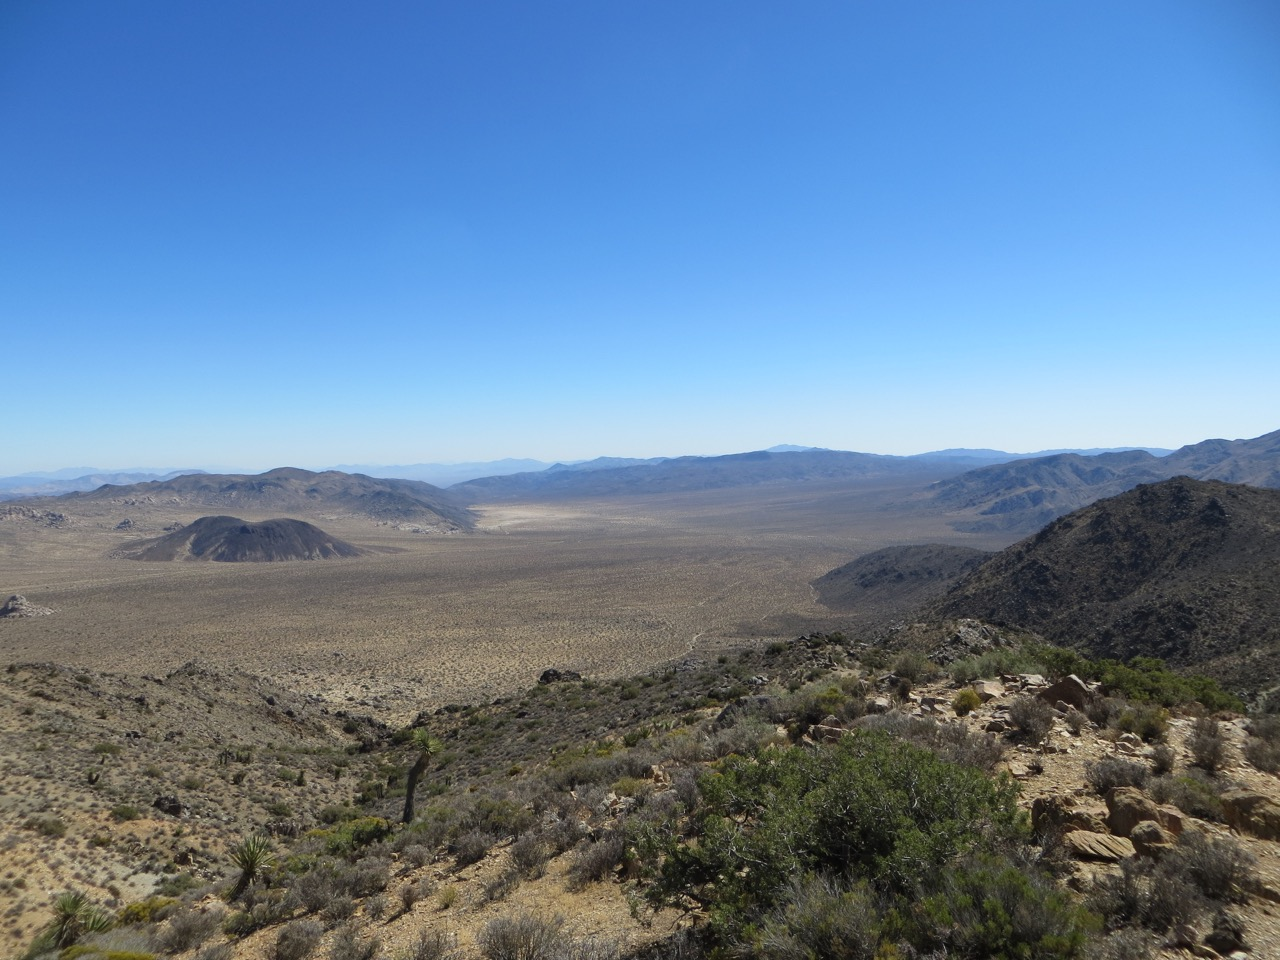 Large expanse of desert in Joshua Tree